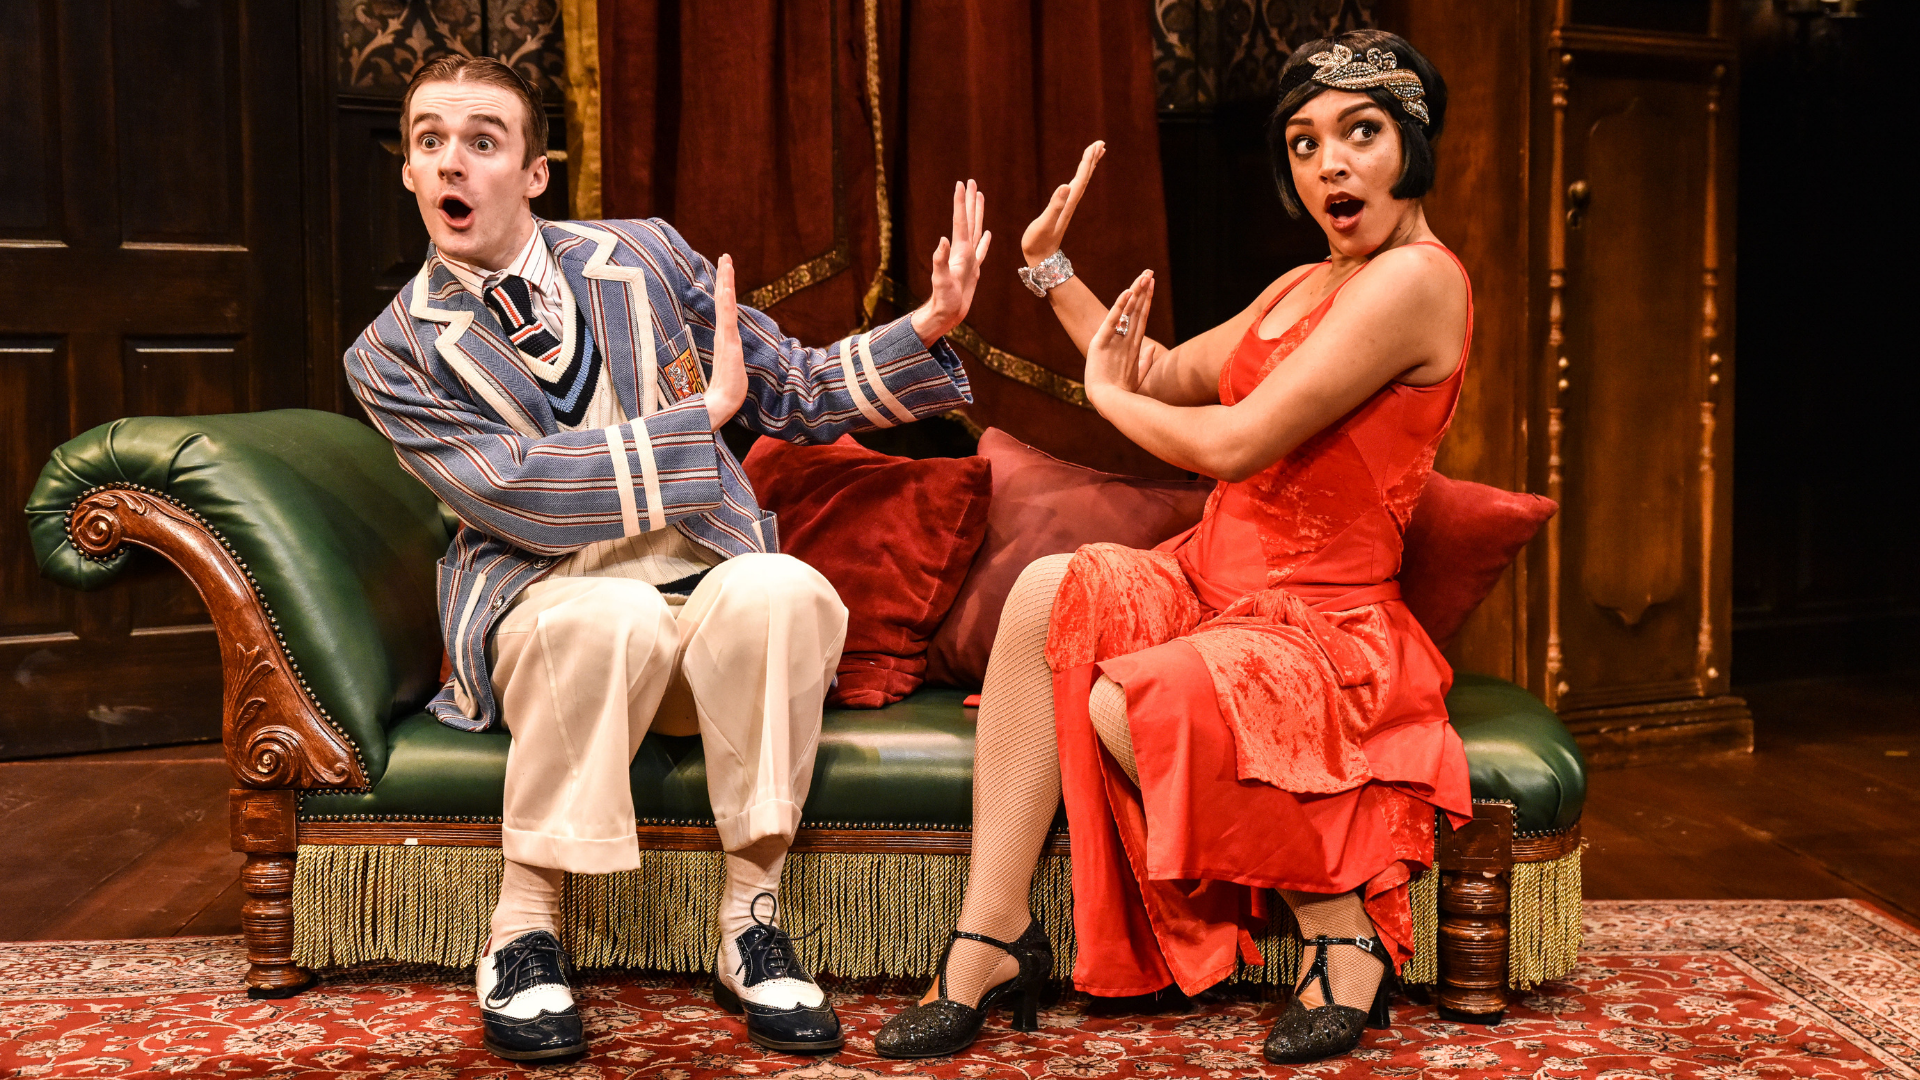 The Play That Goes Wrong Production Shot: Max (Tom Babbage) and Sandra (Laura White) are sat down on the chaise longue looking at the audience with a shocked face and their hands up as if they are pushing each other away.